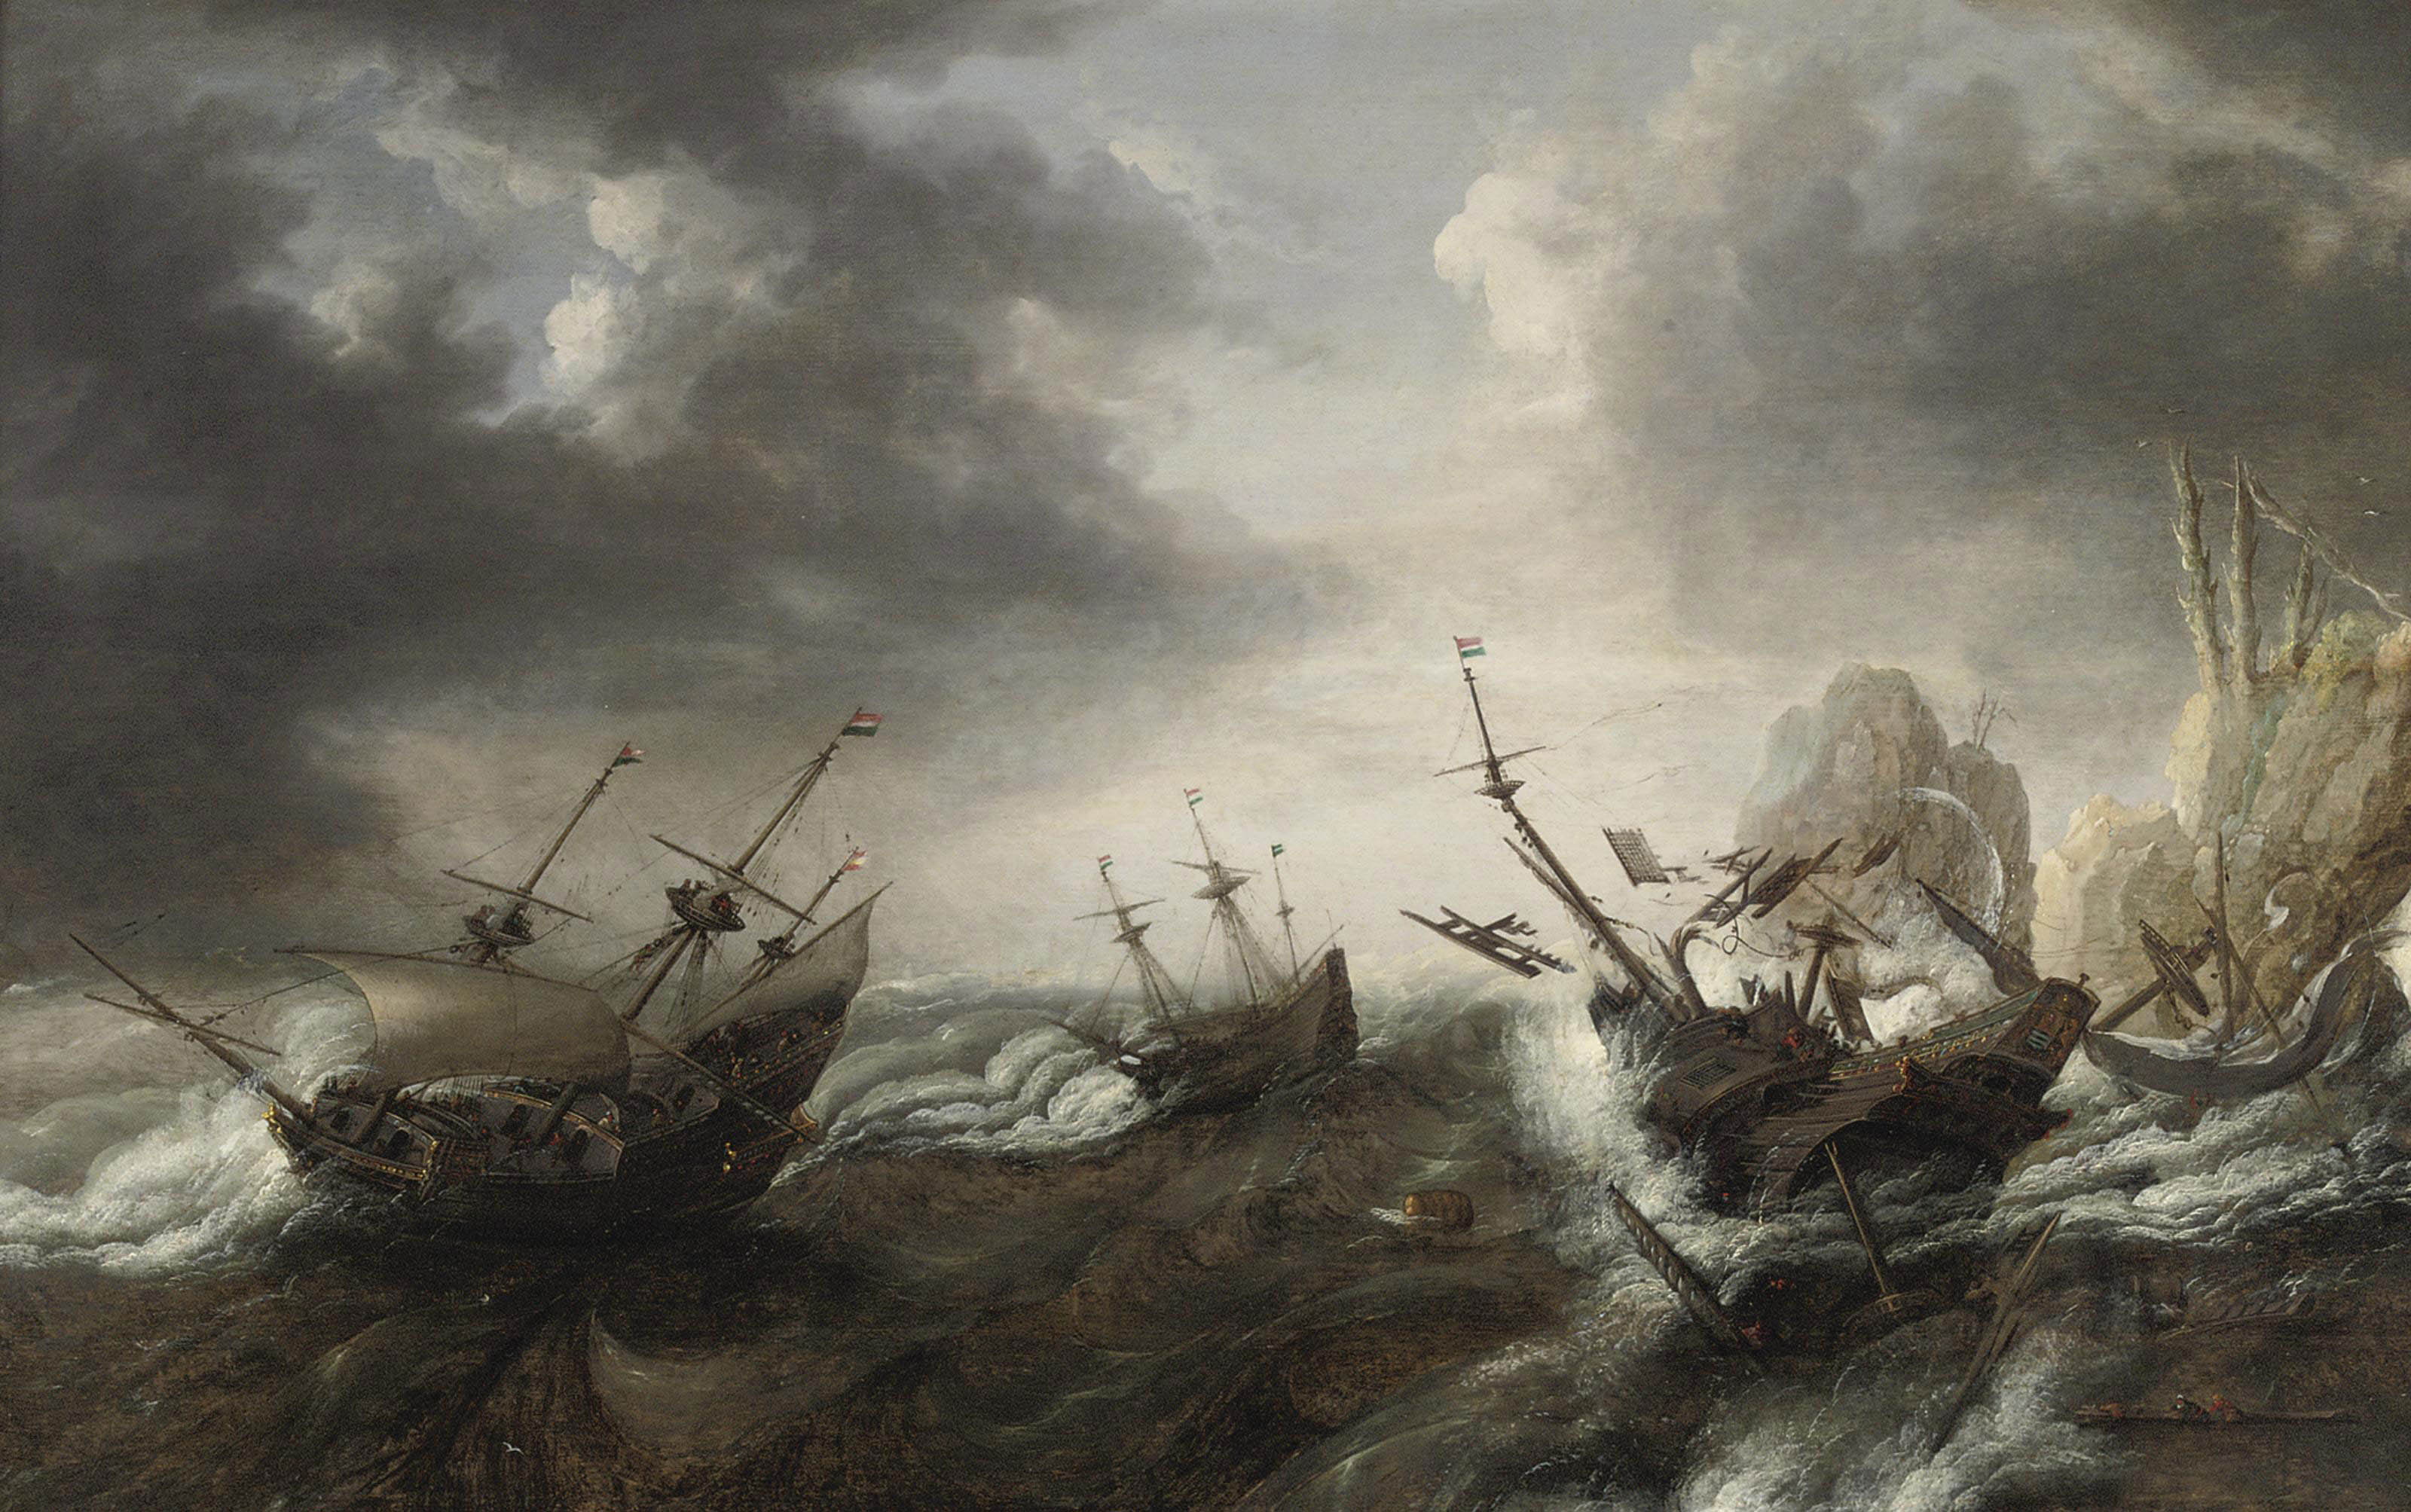 Vessels in stormy water, two boats shipwrecked near the rocks, one with the coat of arms of Zeeland